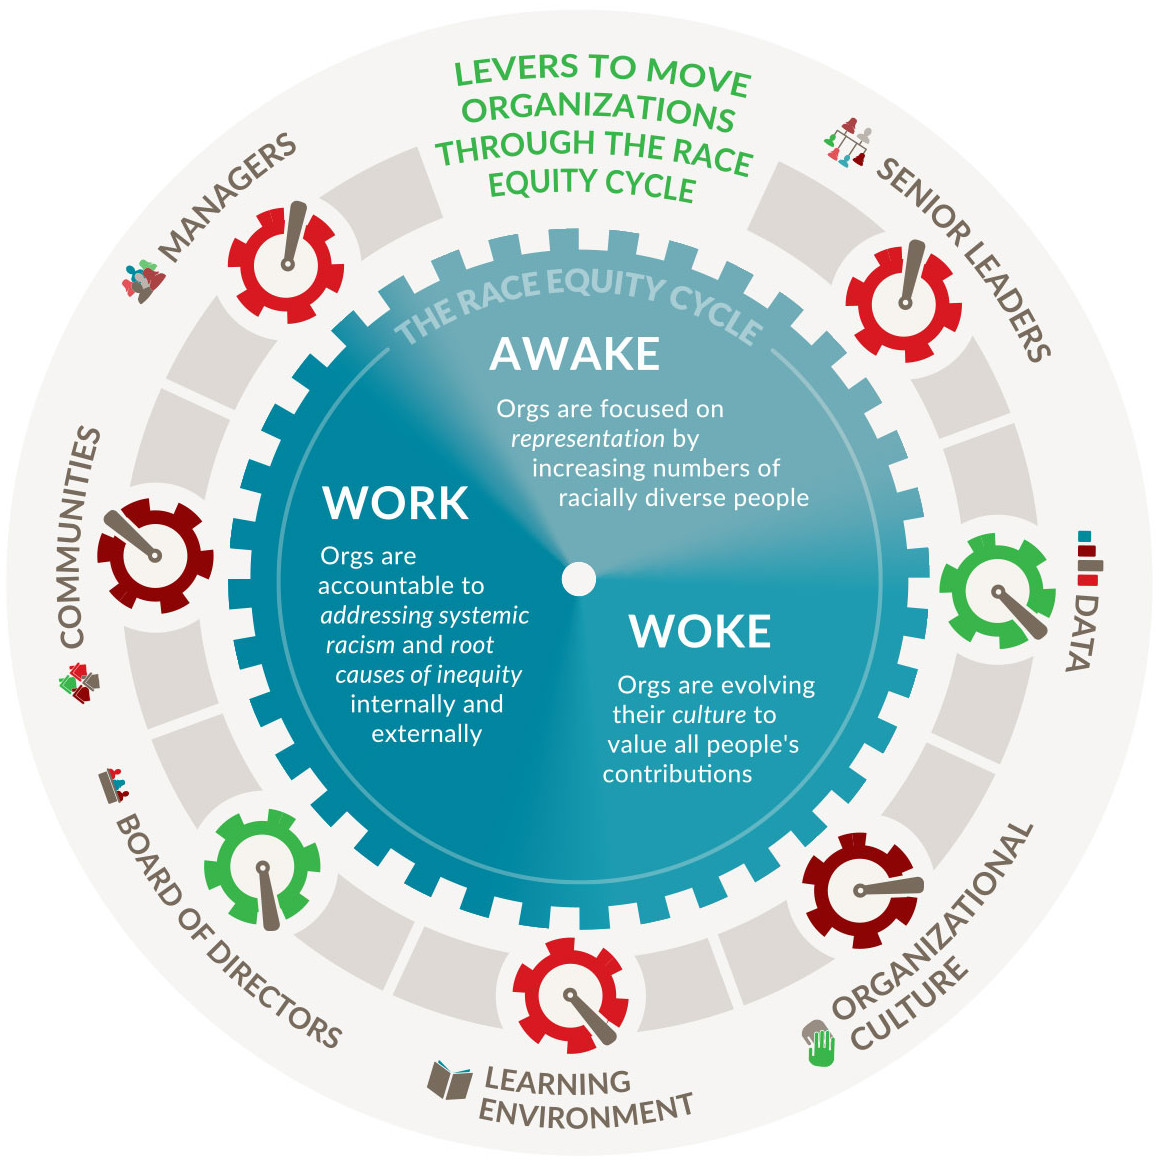 Levers to Move Organizations Through The Race Equity Cycle